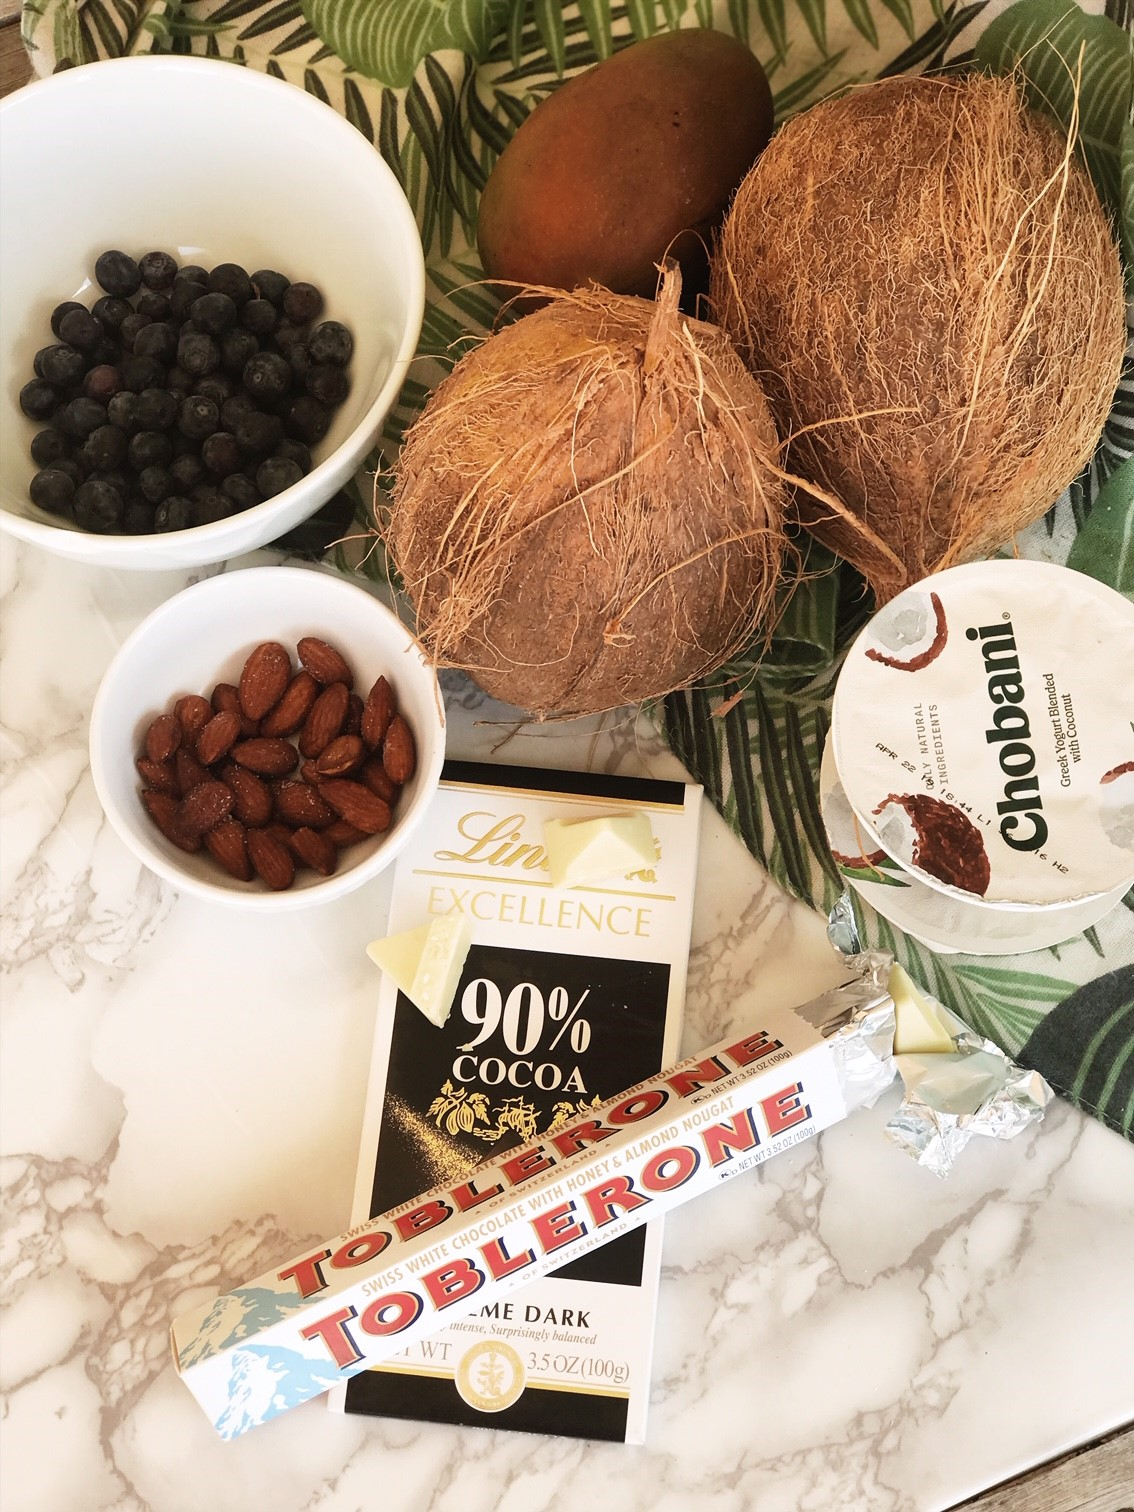 Double Chocolate Coconut Bowl Recipe - Assembling all the ingredients